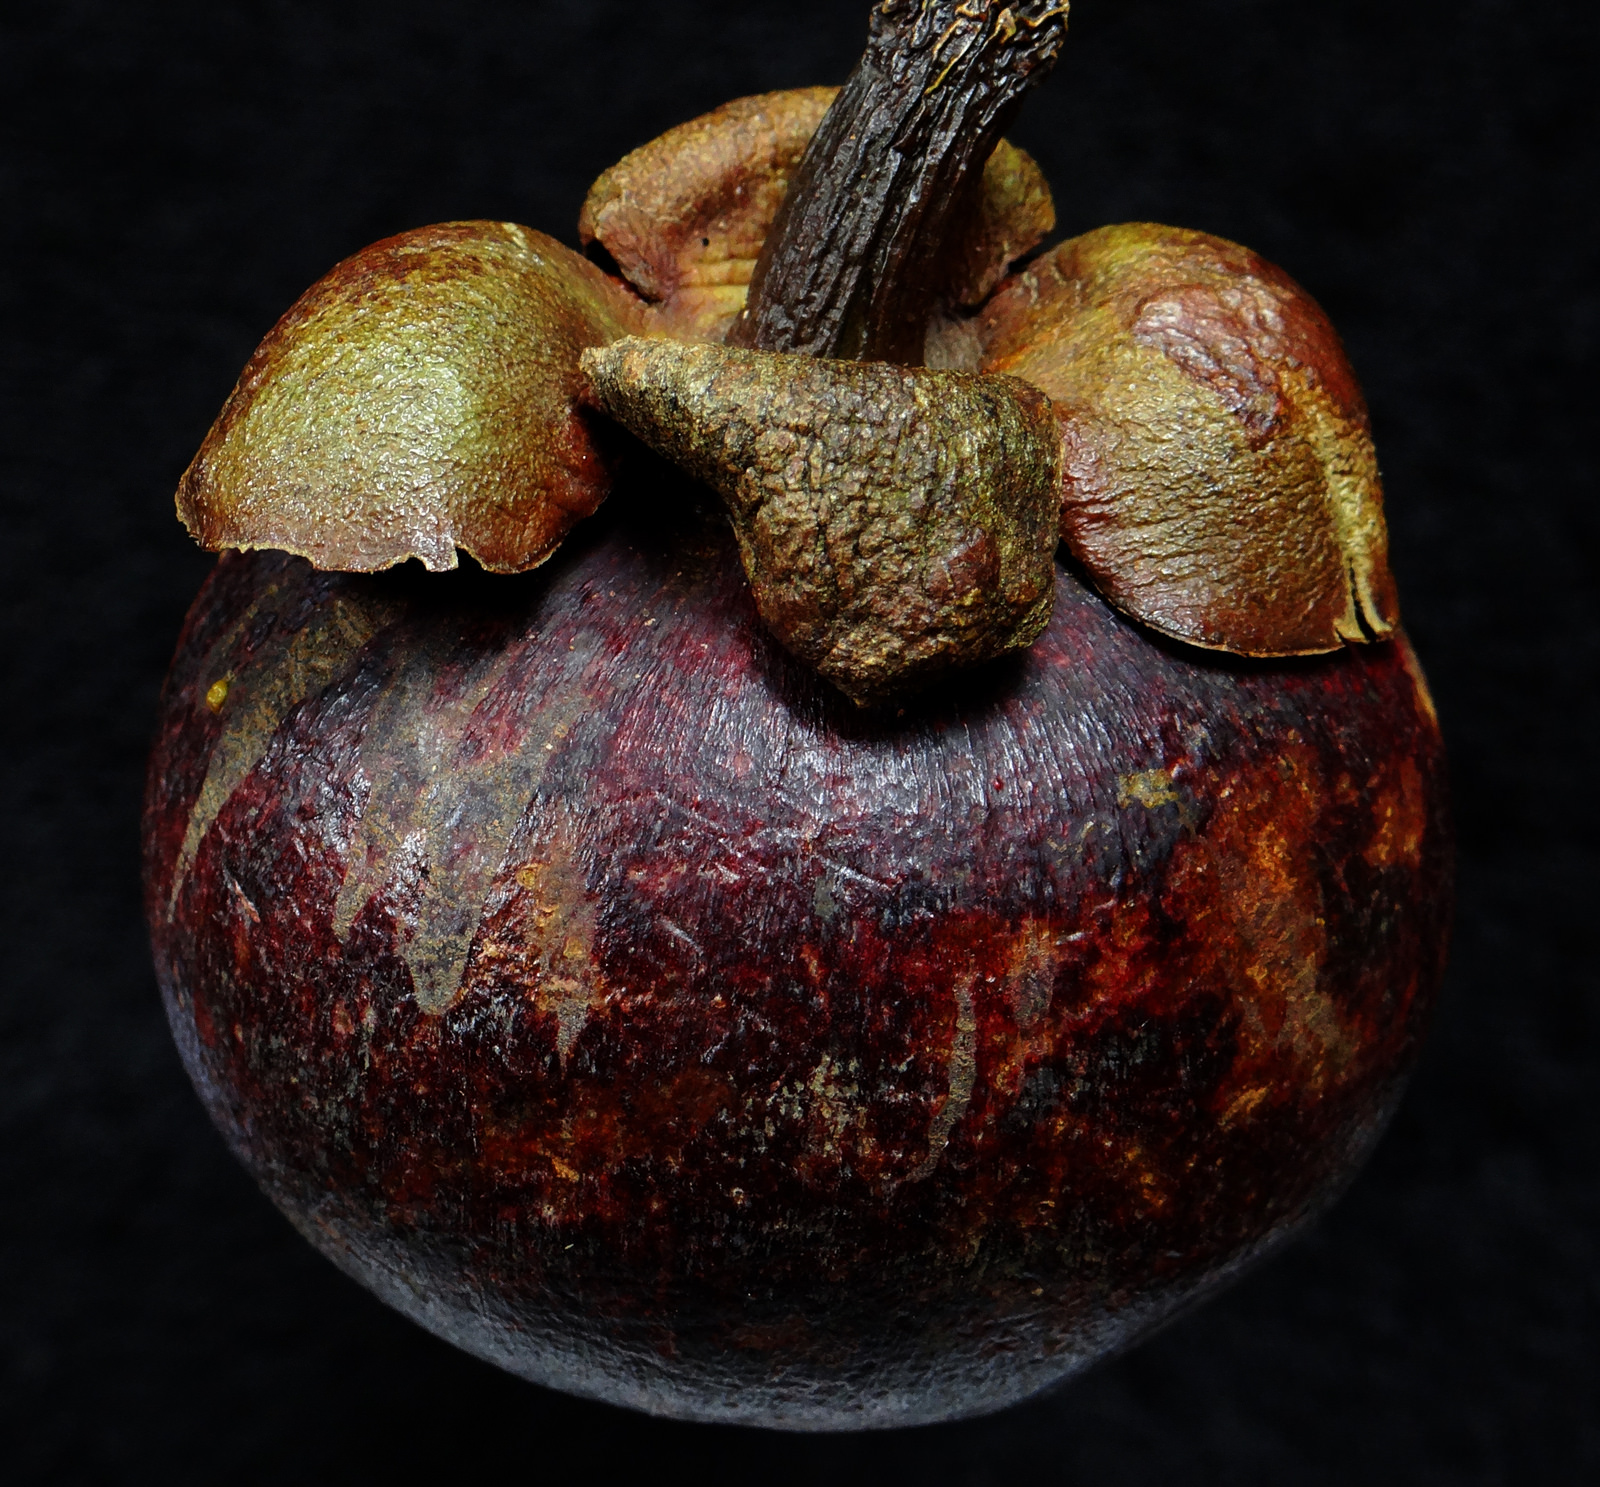 The fruit of Garcinia mangostana